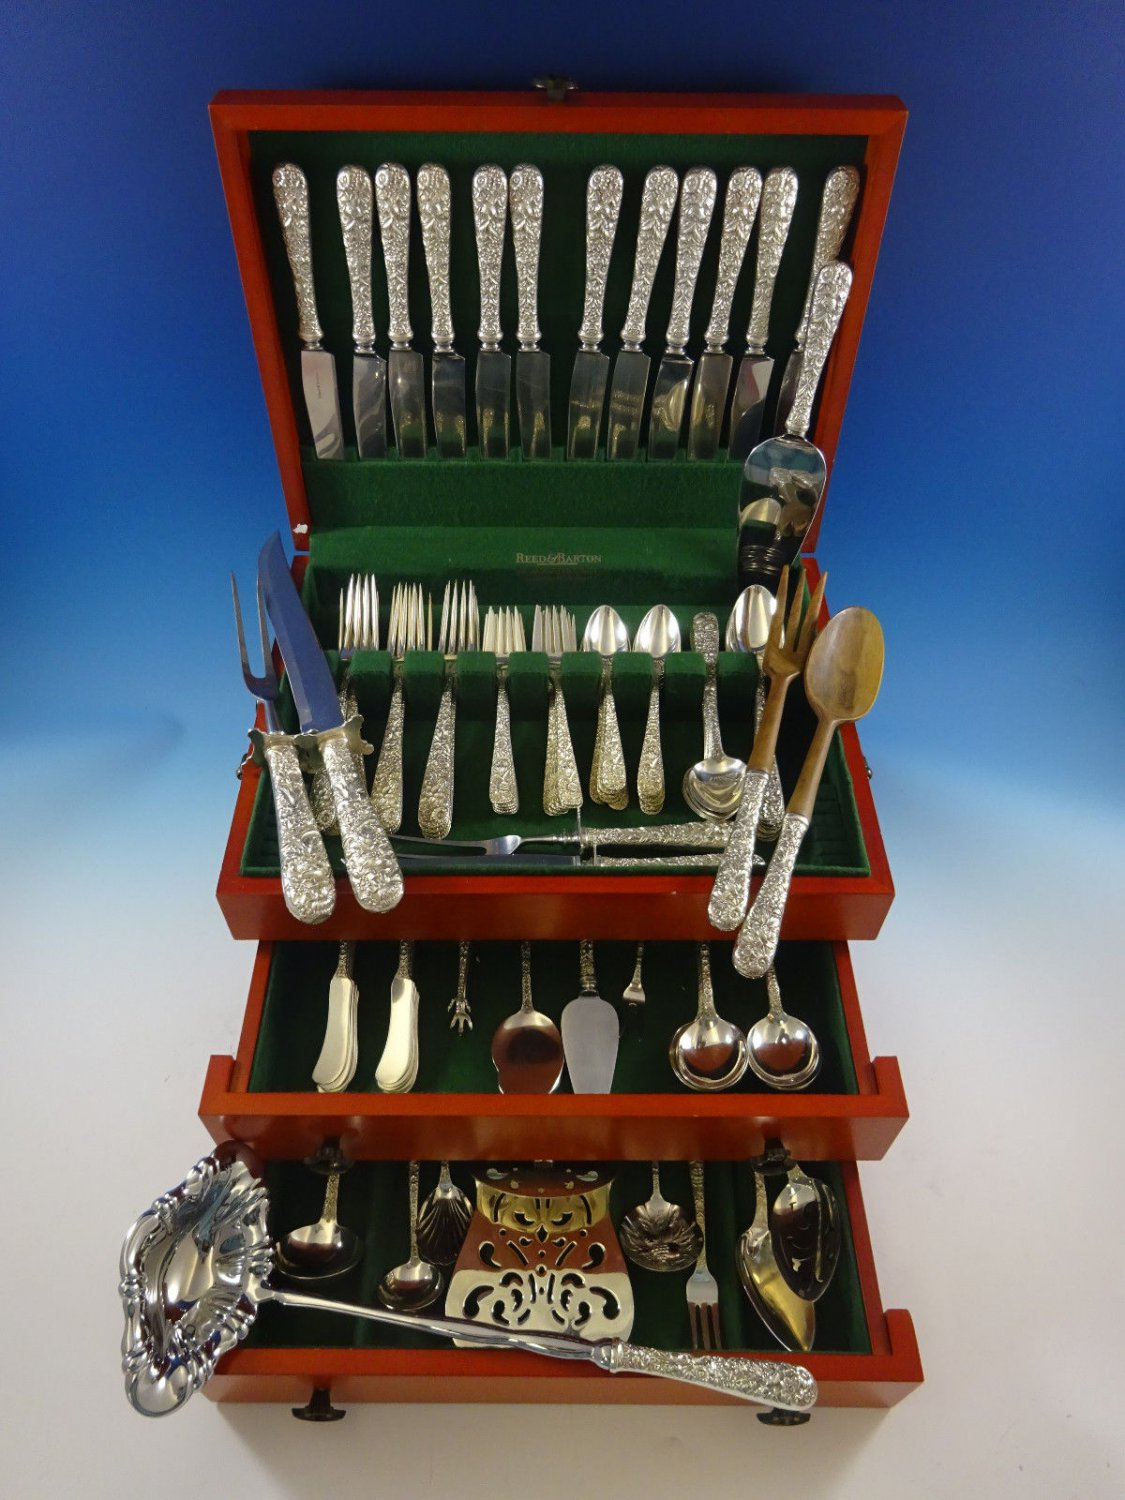 Repousse by Kirk Sterling Silver Flatware Set For 12 Service 92 Pcs Dinner Size